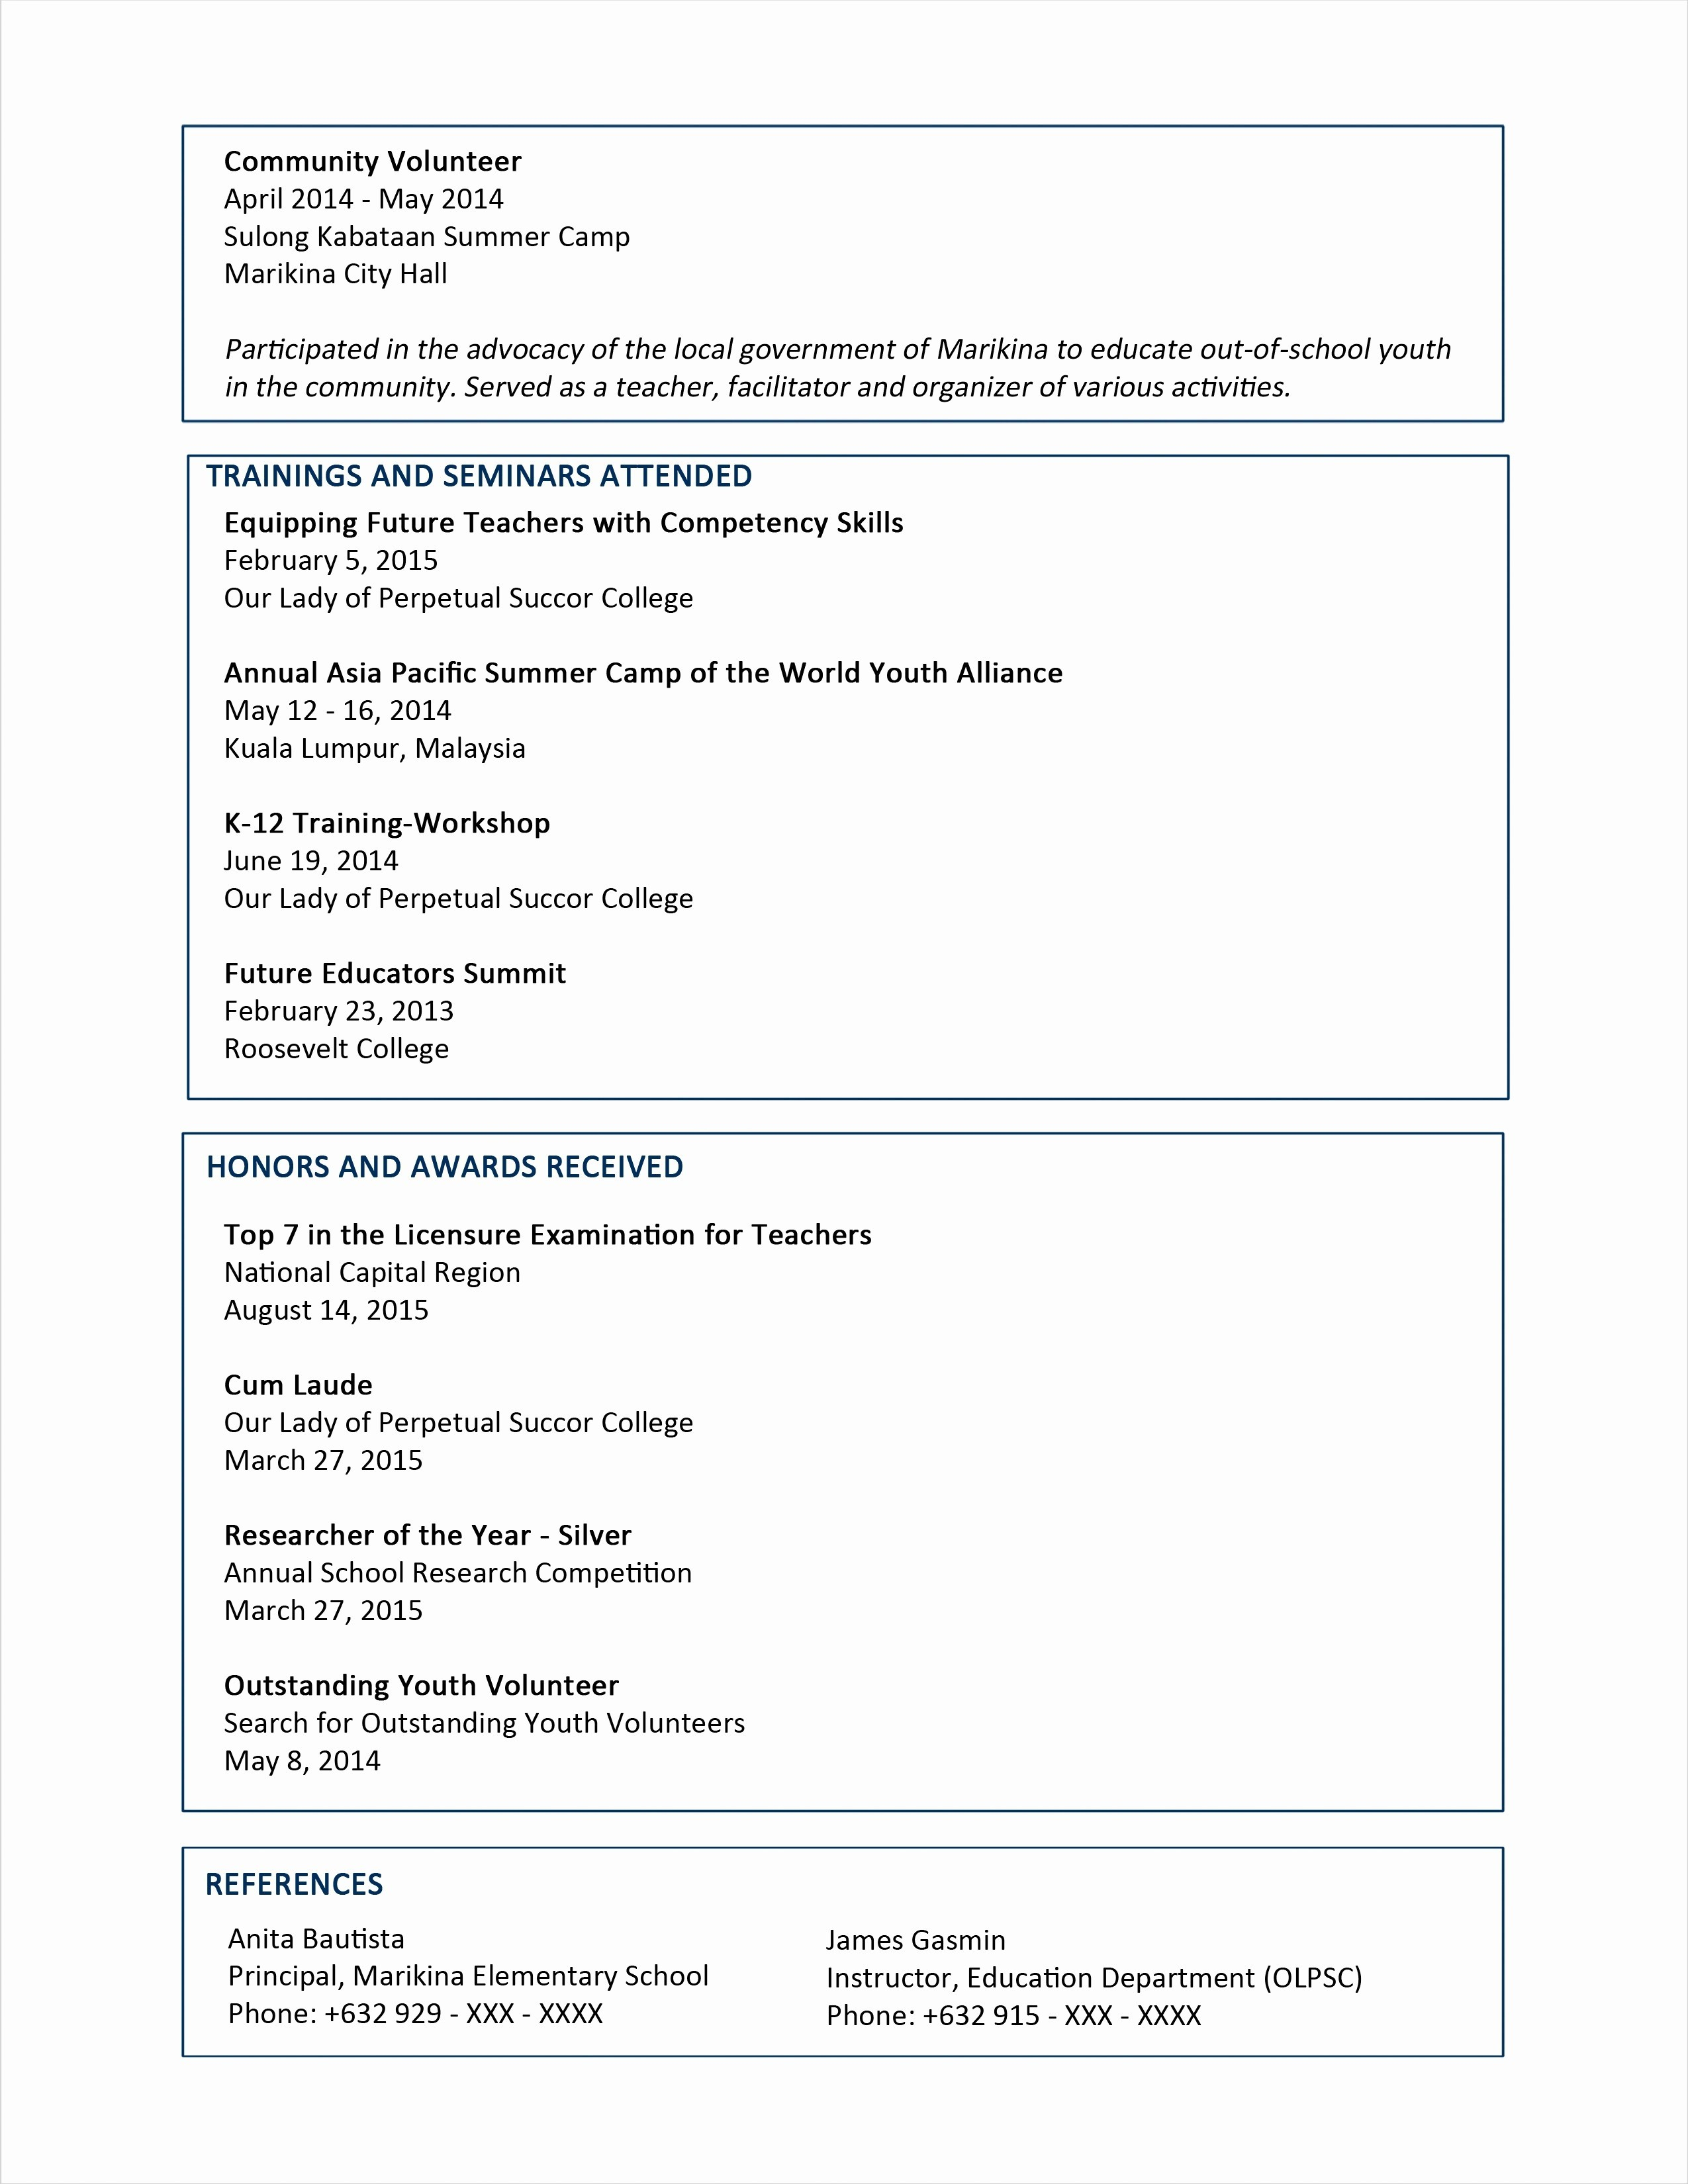 Resume Opening Statements Examples - Resume In Spanish Unique Best Examples Resumes Ecologist Resume 0d